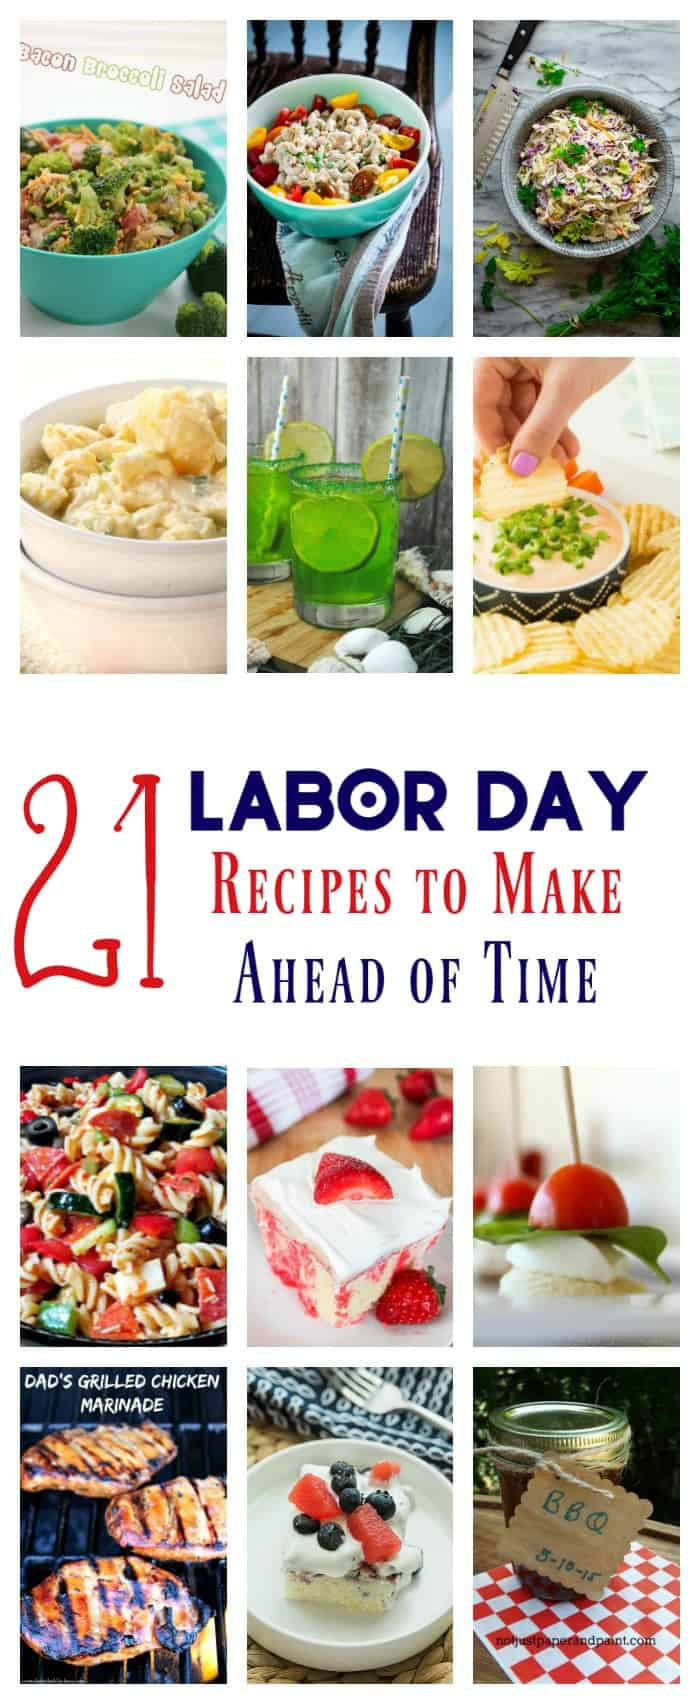 Don\'t spend your whole end of summer bash sweating over a stove! Prep these great Labor Day recipes ahead of time and spend the day soaking up the last of summer fun with your family!